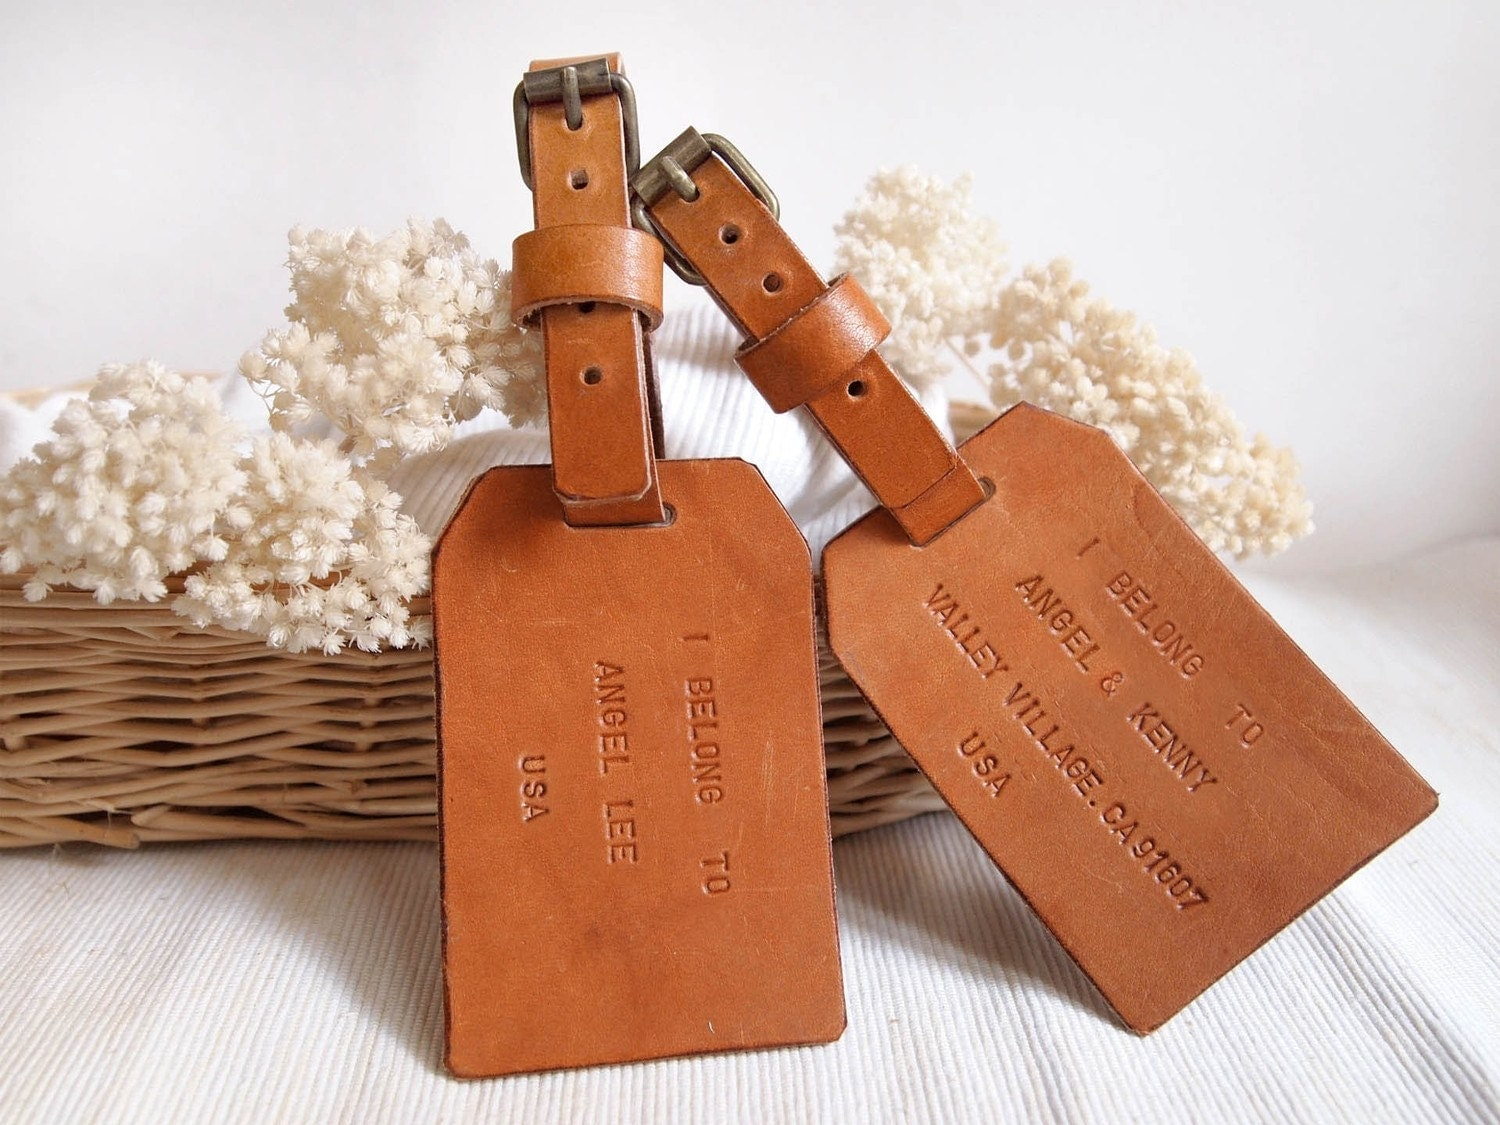 Luggage Tags: Set Of 2 Personalized Luggage Tag Leather Luggage Tag